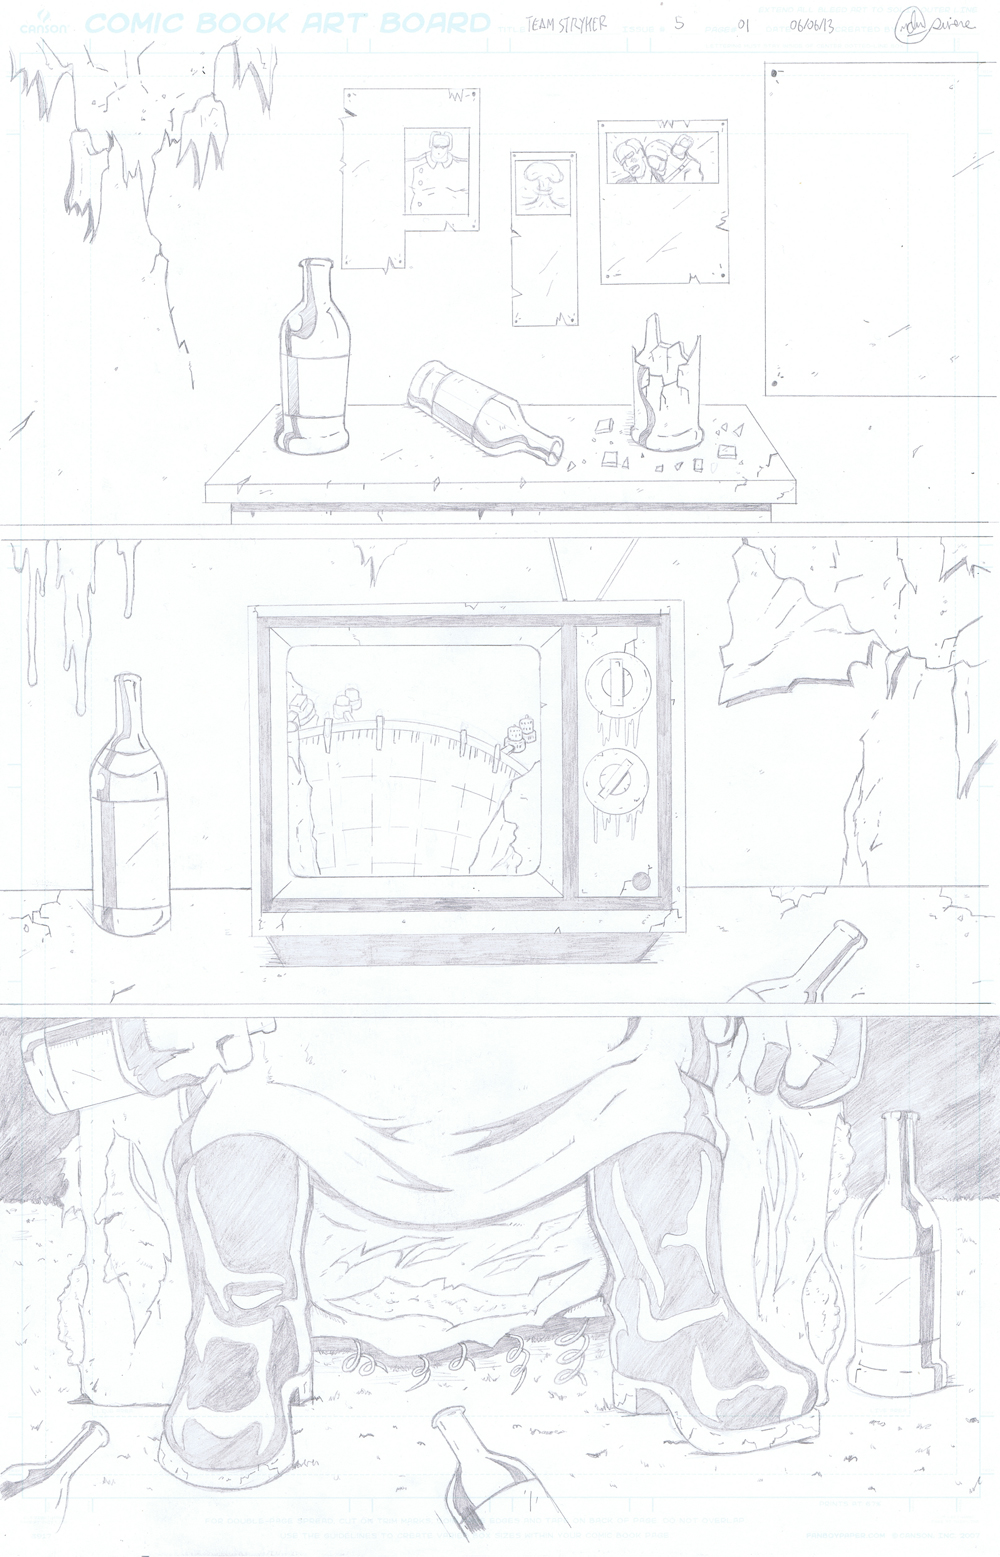 MISSION 005: PAGE 01 PENCIL